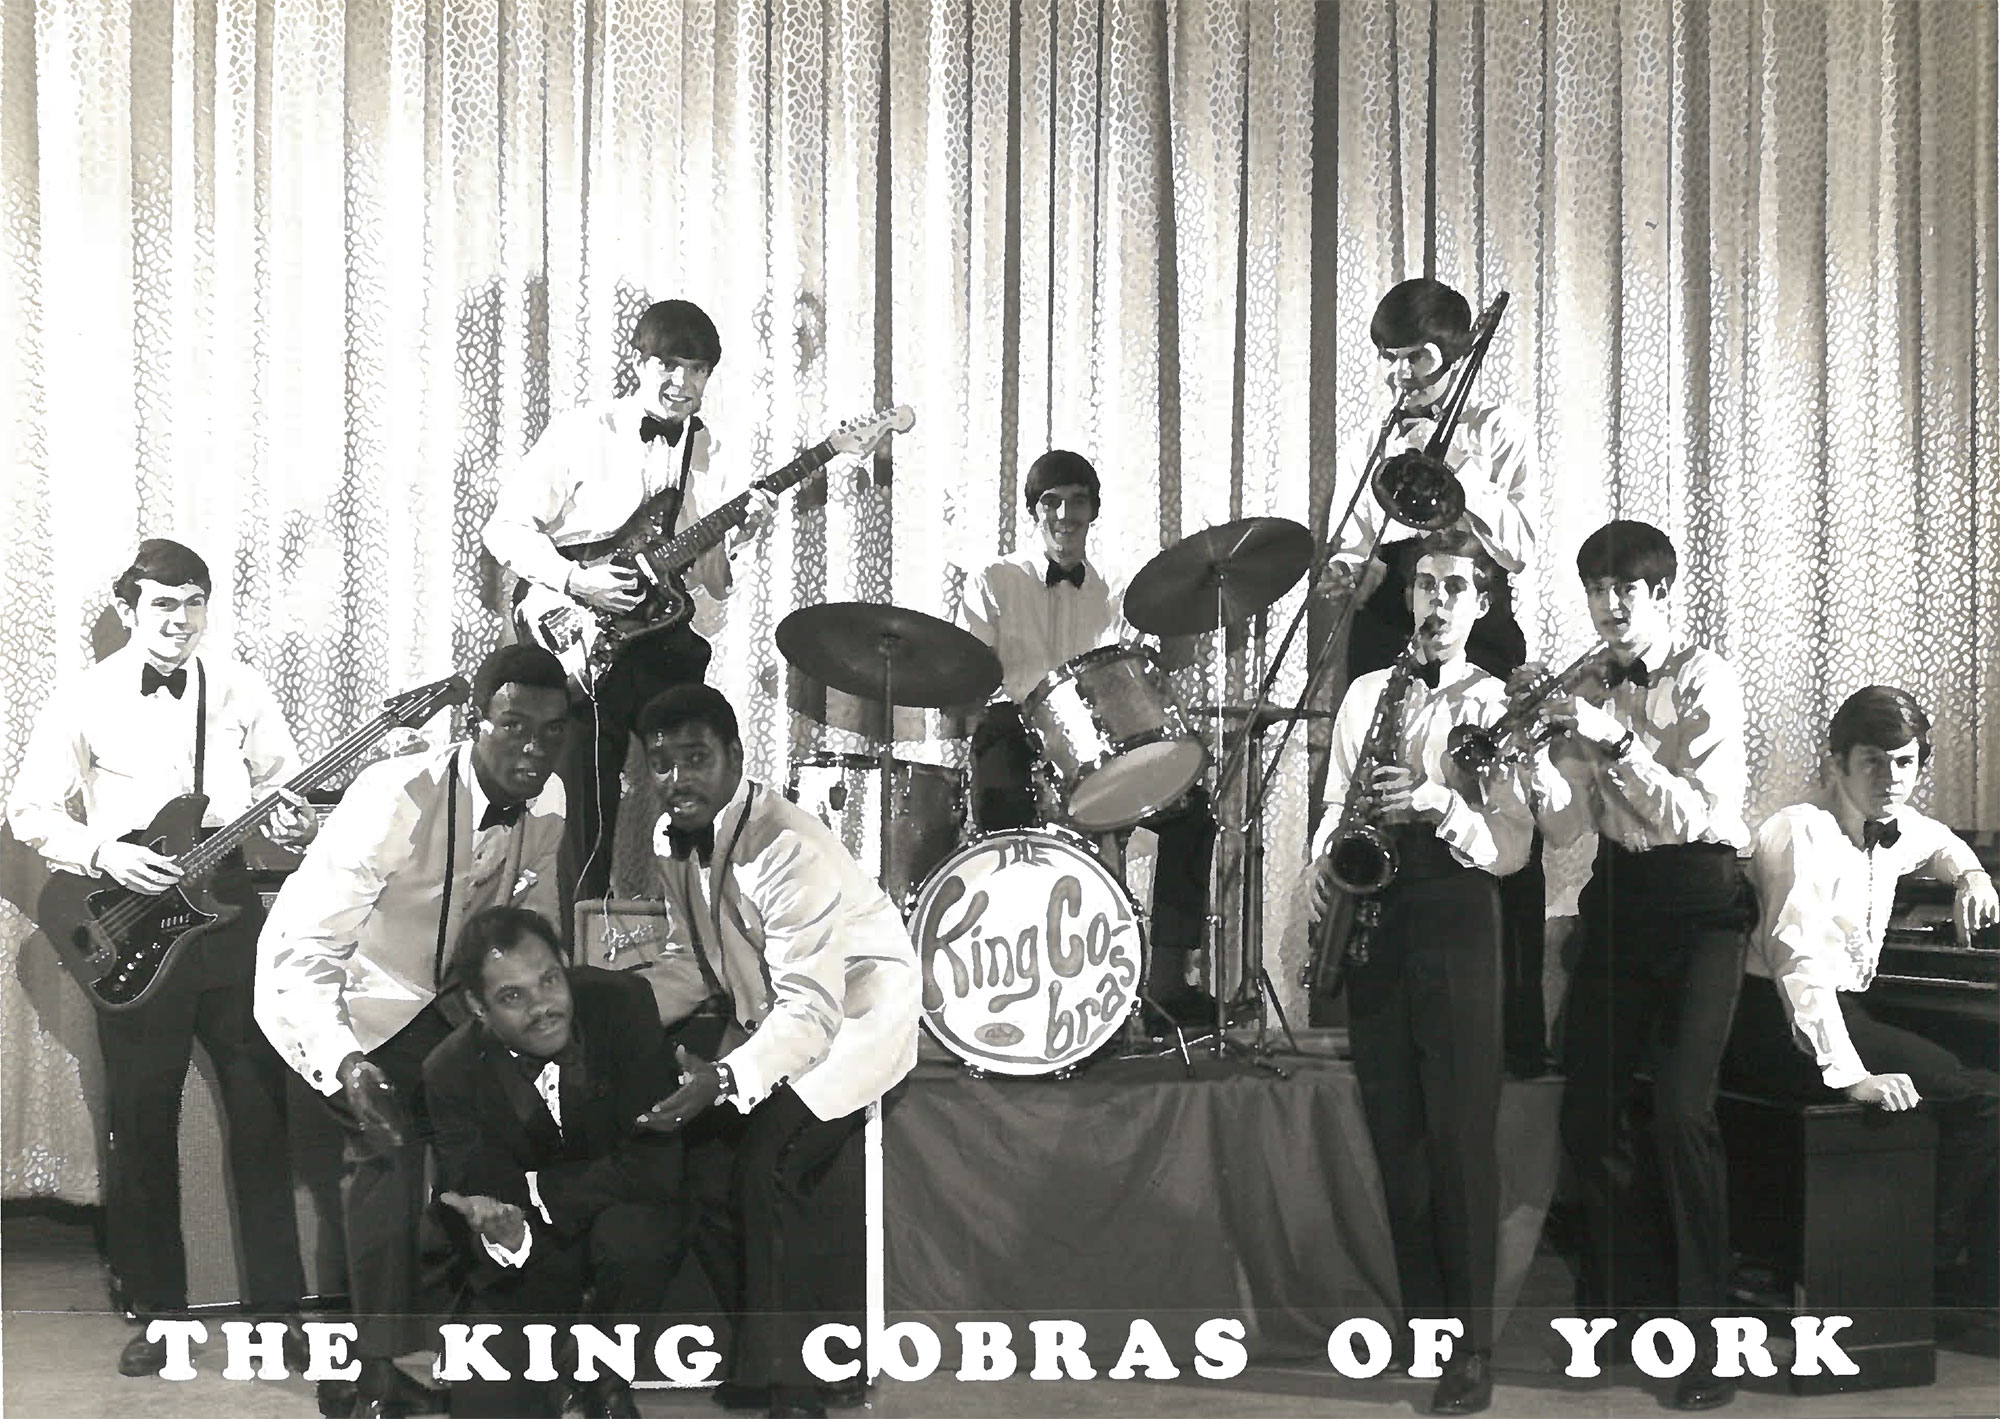 A group photo of the King Cobras of York soul cover band.